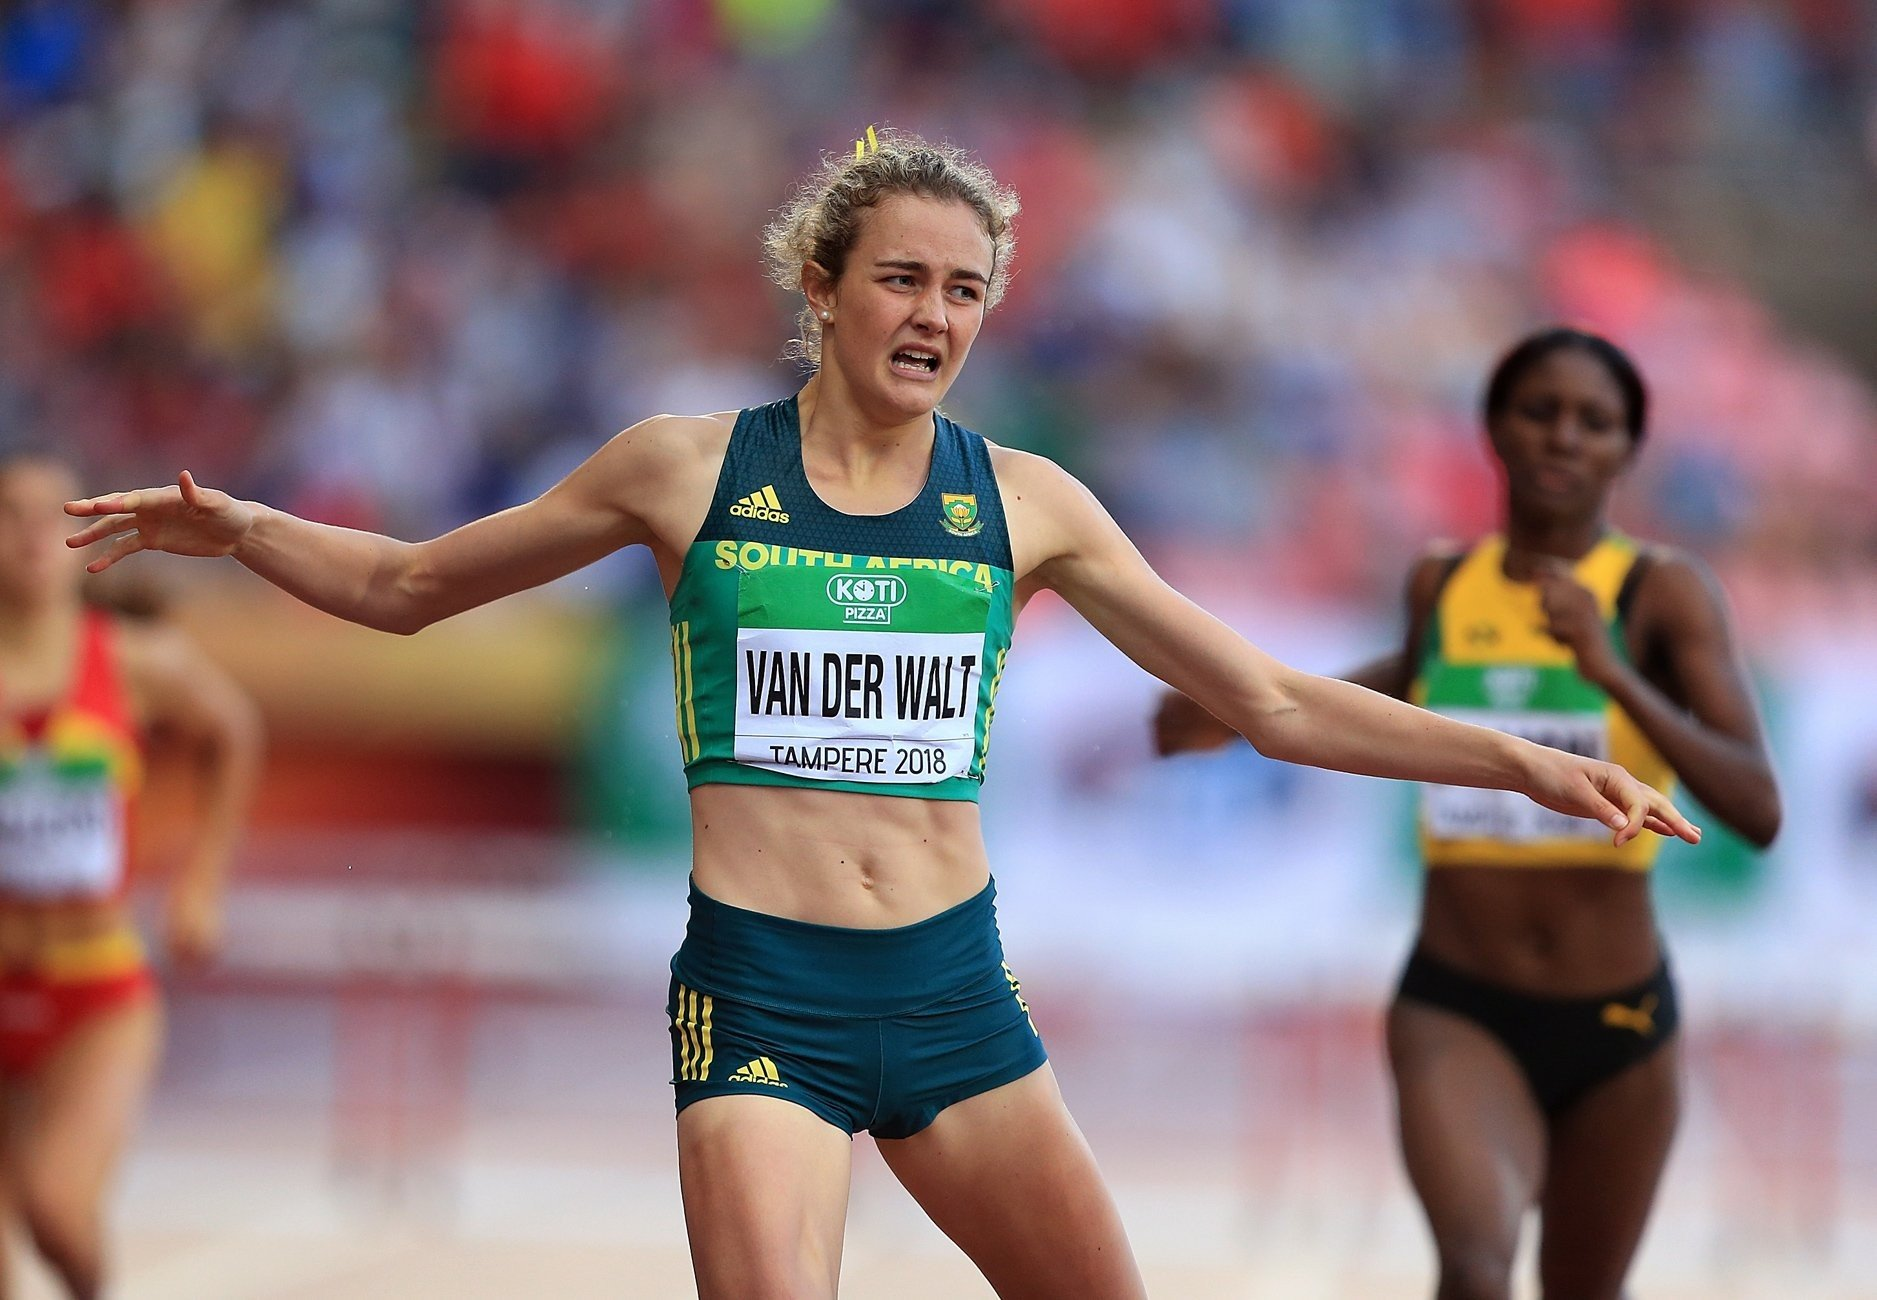 Zeney van der Walt of South Africa takes gold in the 400m hurdles at the IAAF World U20 Championships Tampere 2018 / Photo Credit: Getty Images for IAAF